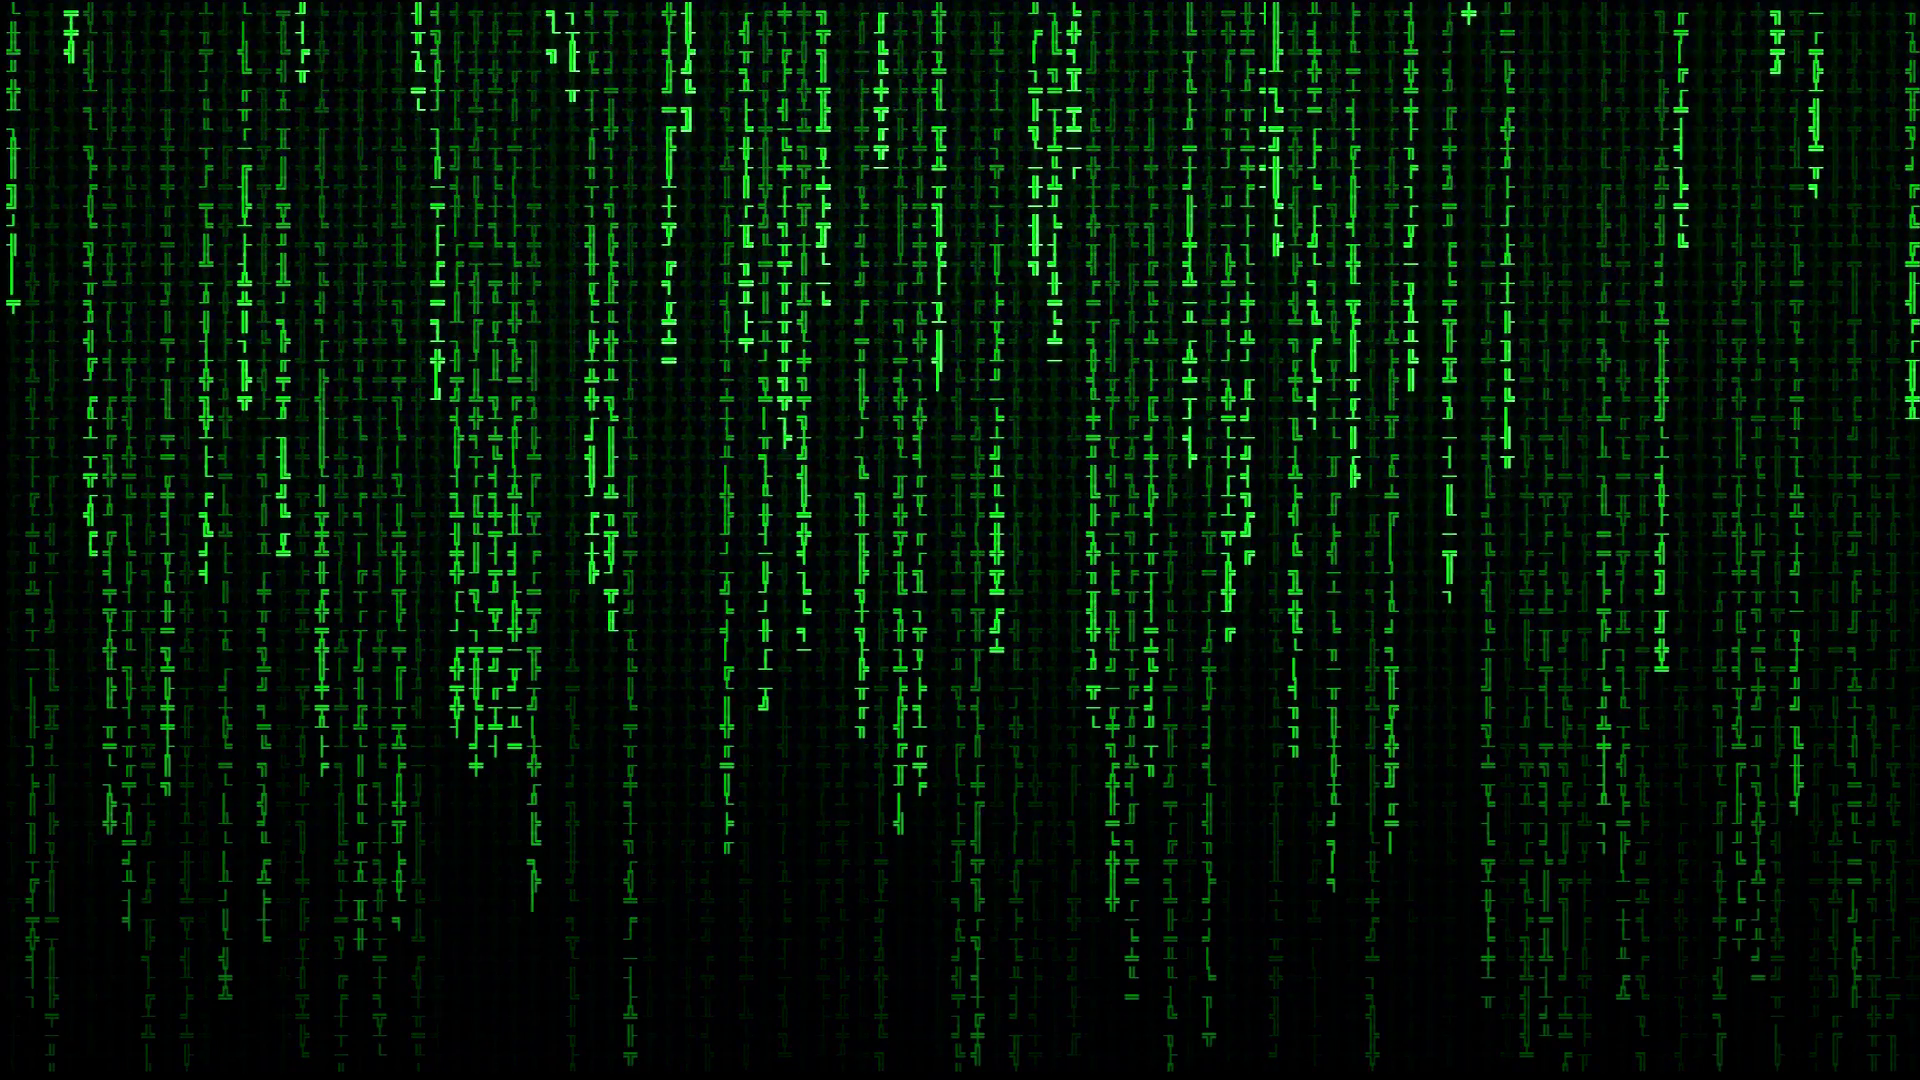 Matrix Code Png, png collections at sccpre.cat.